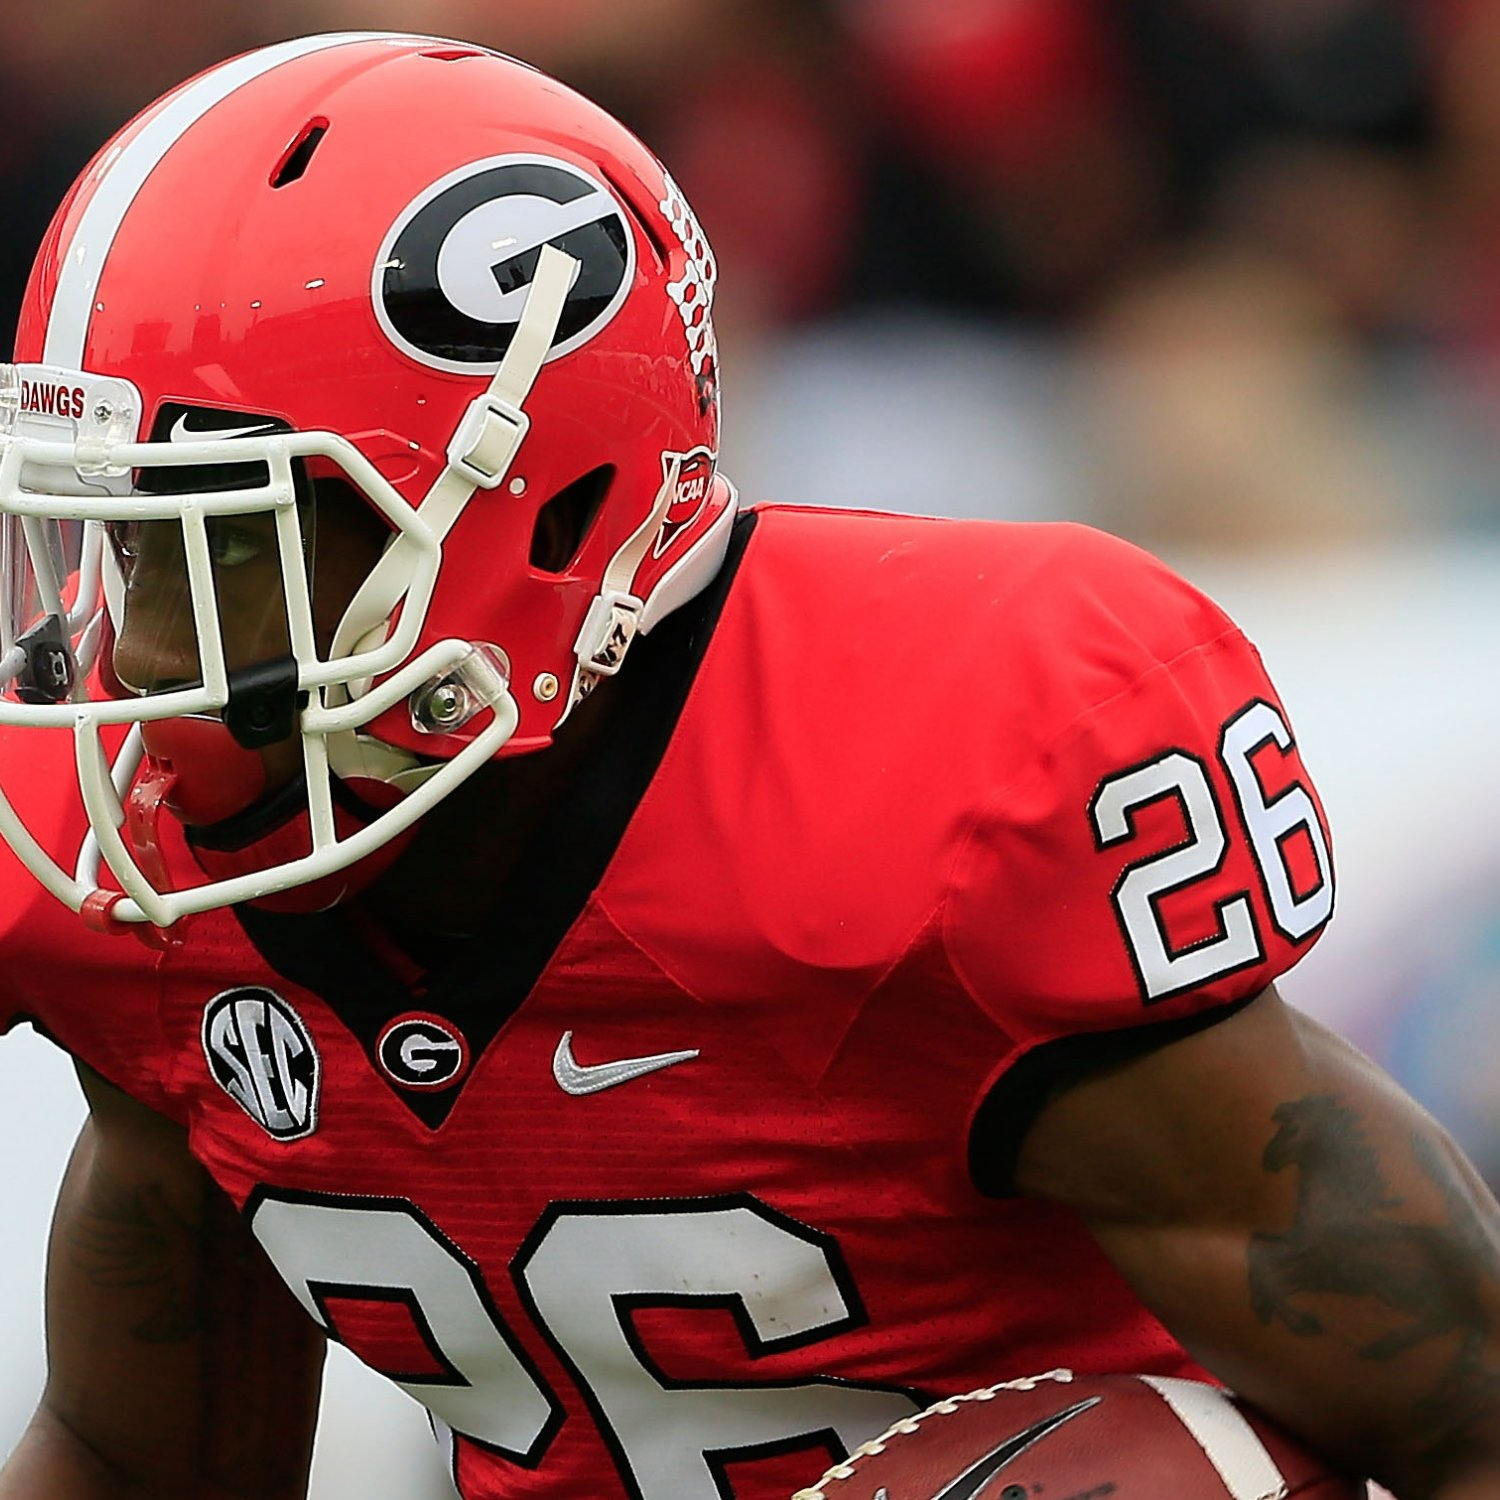 Denver Broncos Re Grading Their Key 2013 Offseason: Georgia Football: WR Malcolm Mitchell Cleared For